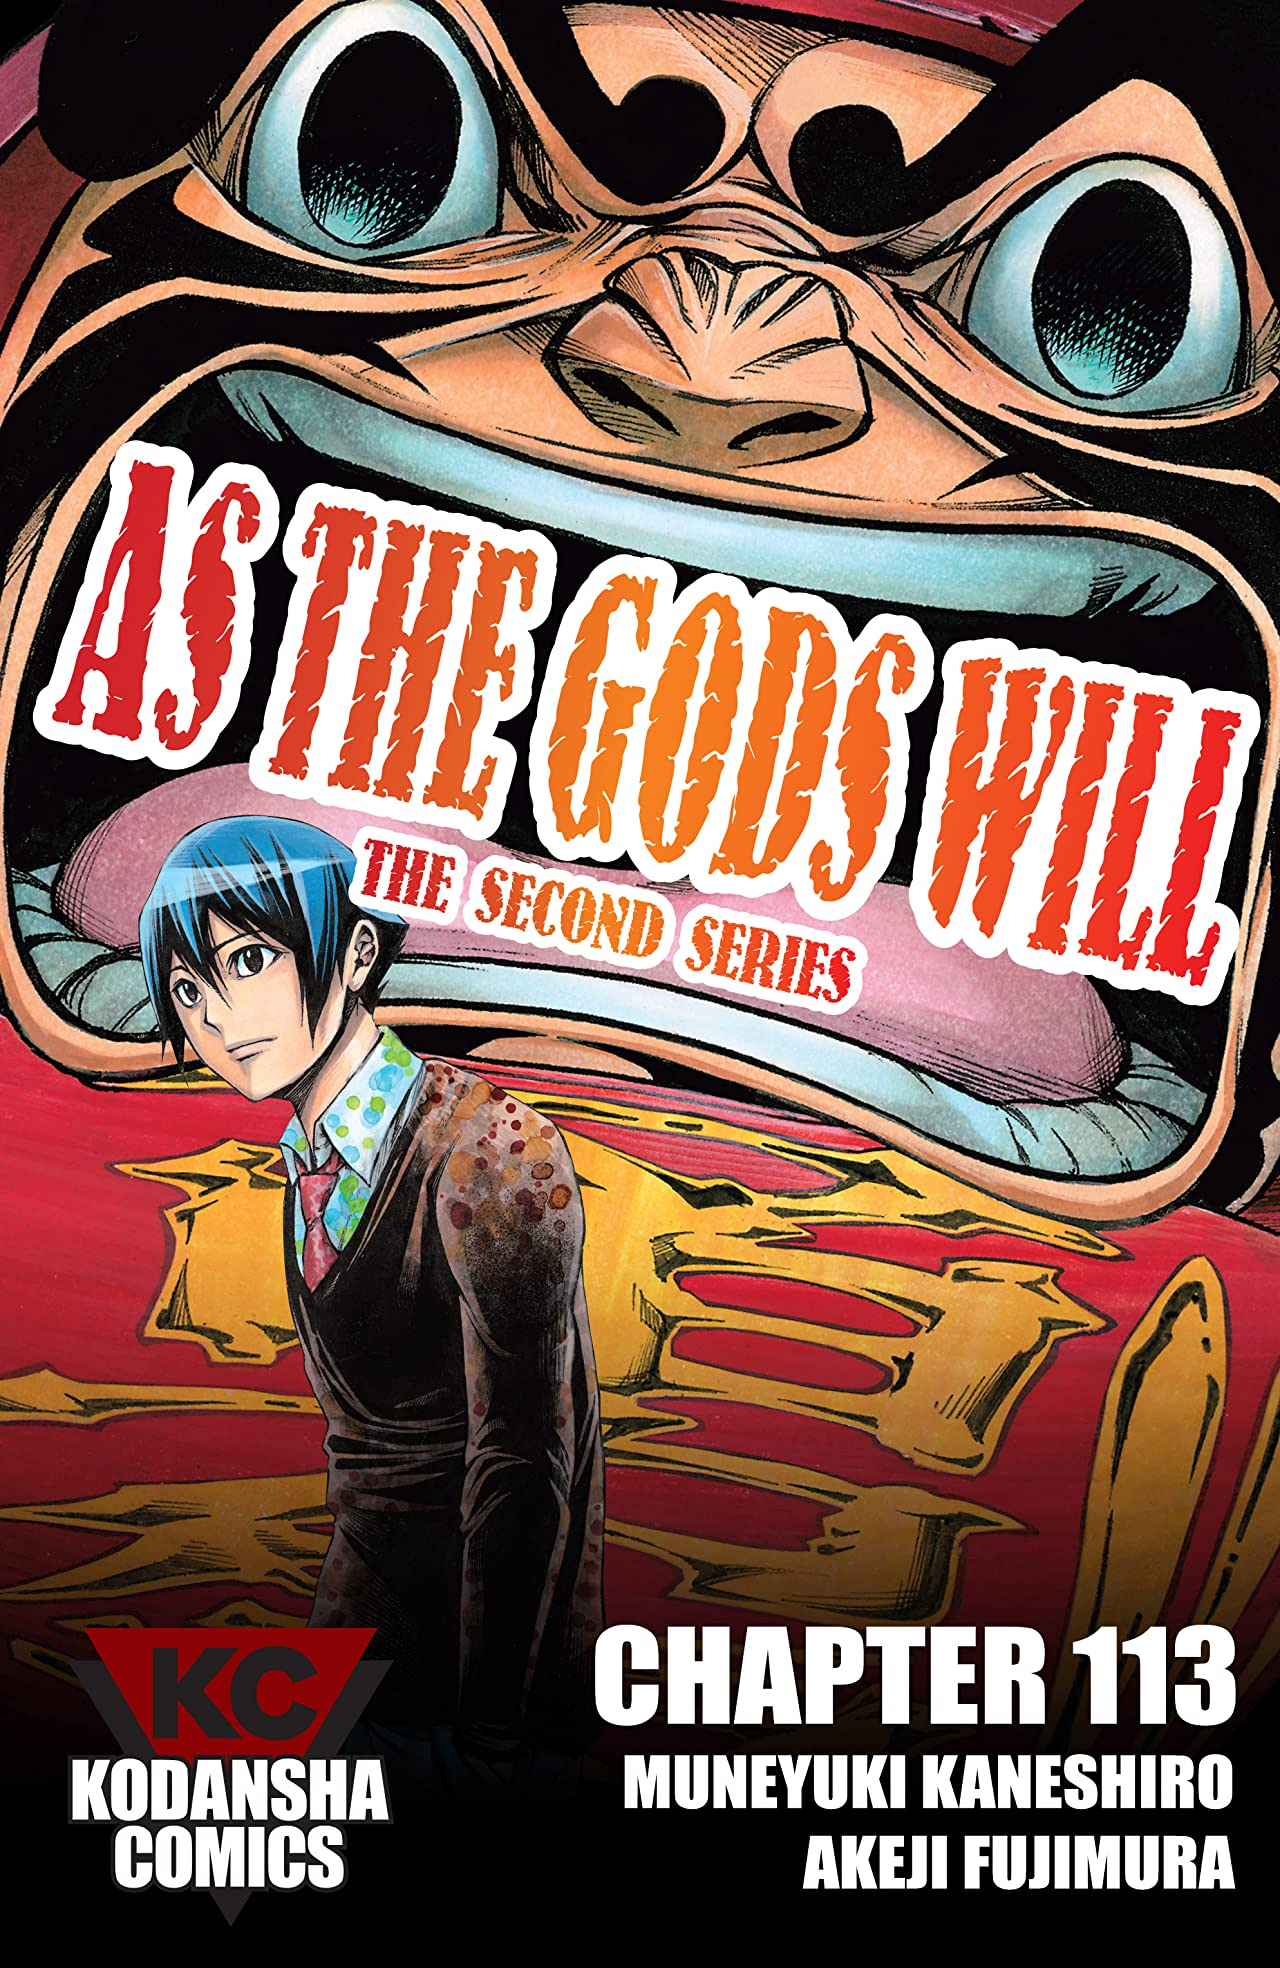 As The Gods Will: The Second Series #113